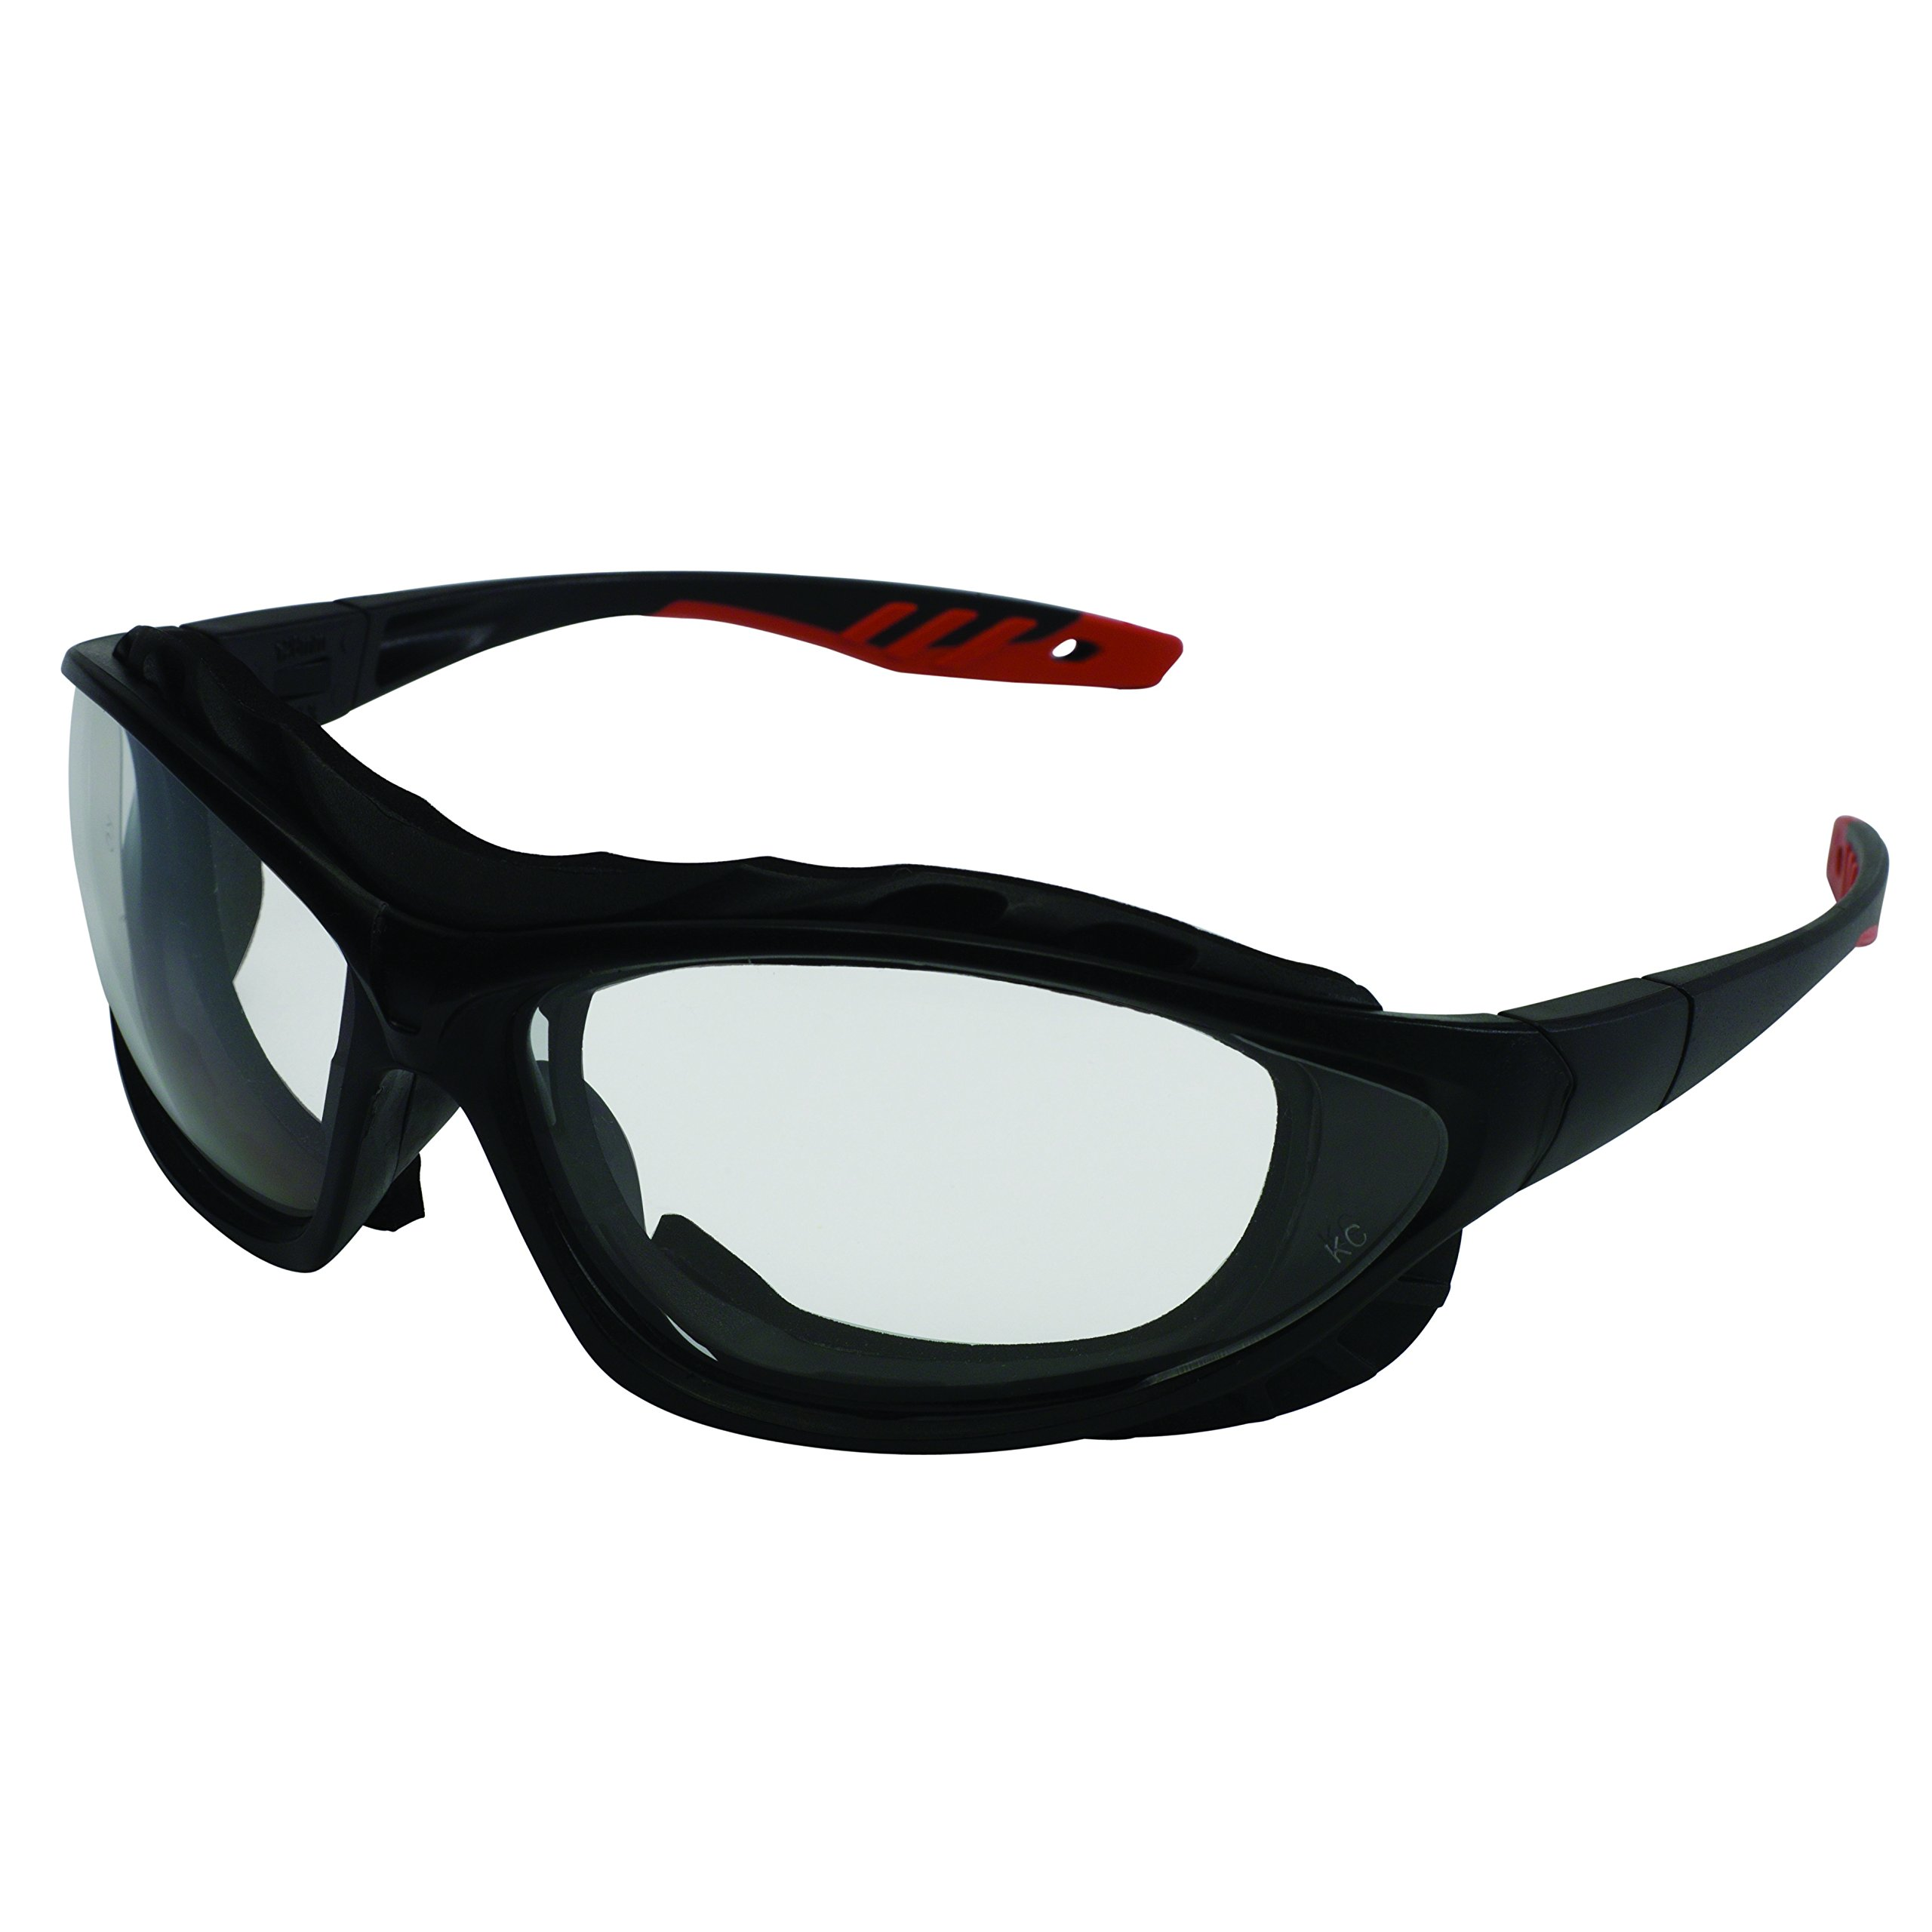 Jackson Safety 33345 V50 Epic Safety Eyewear, Clear Super Anti-Fog Lenses with Interchangeable Temples and Head Strap (Pack of 12)